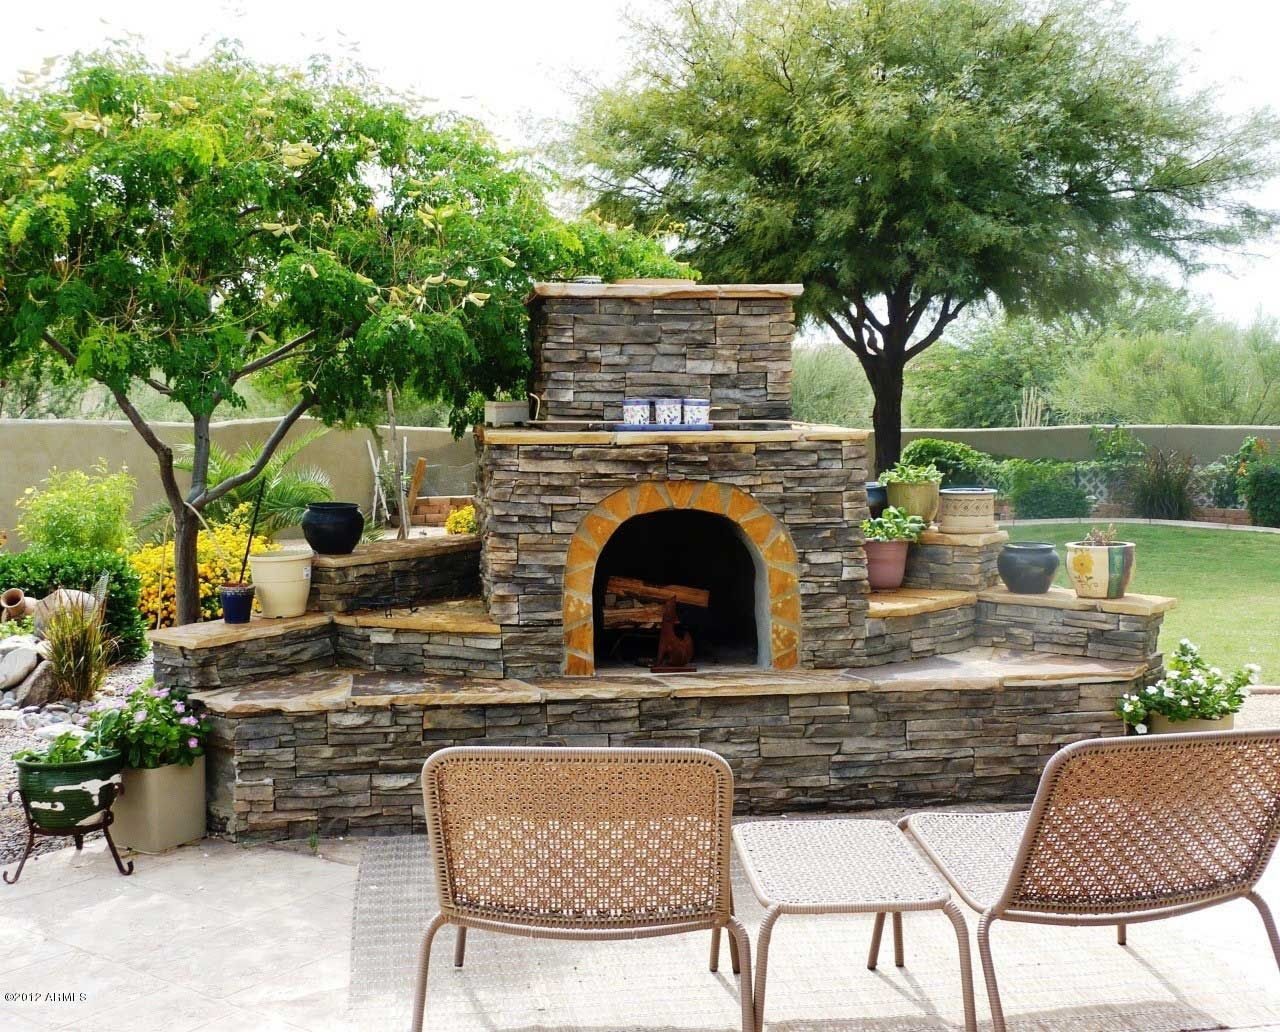 Good Creative Ideas Outdoor Fireplace Designs | Outdoor Design And Ideas